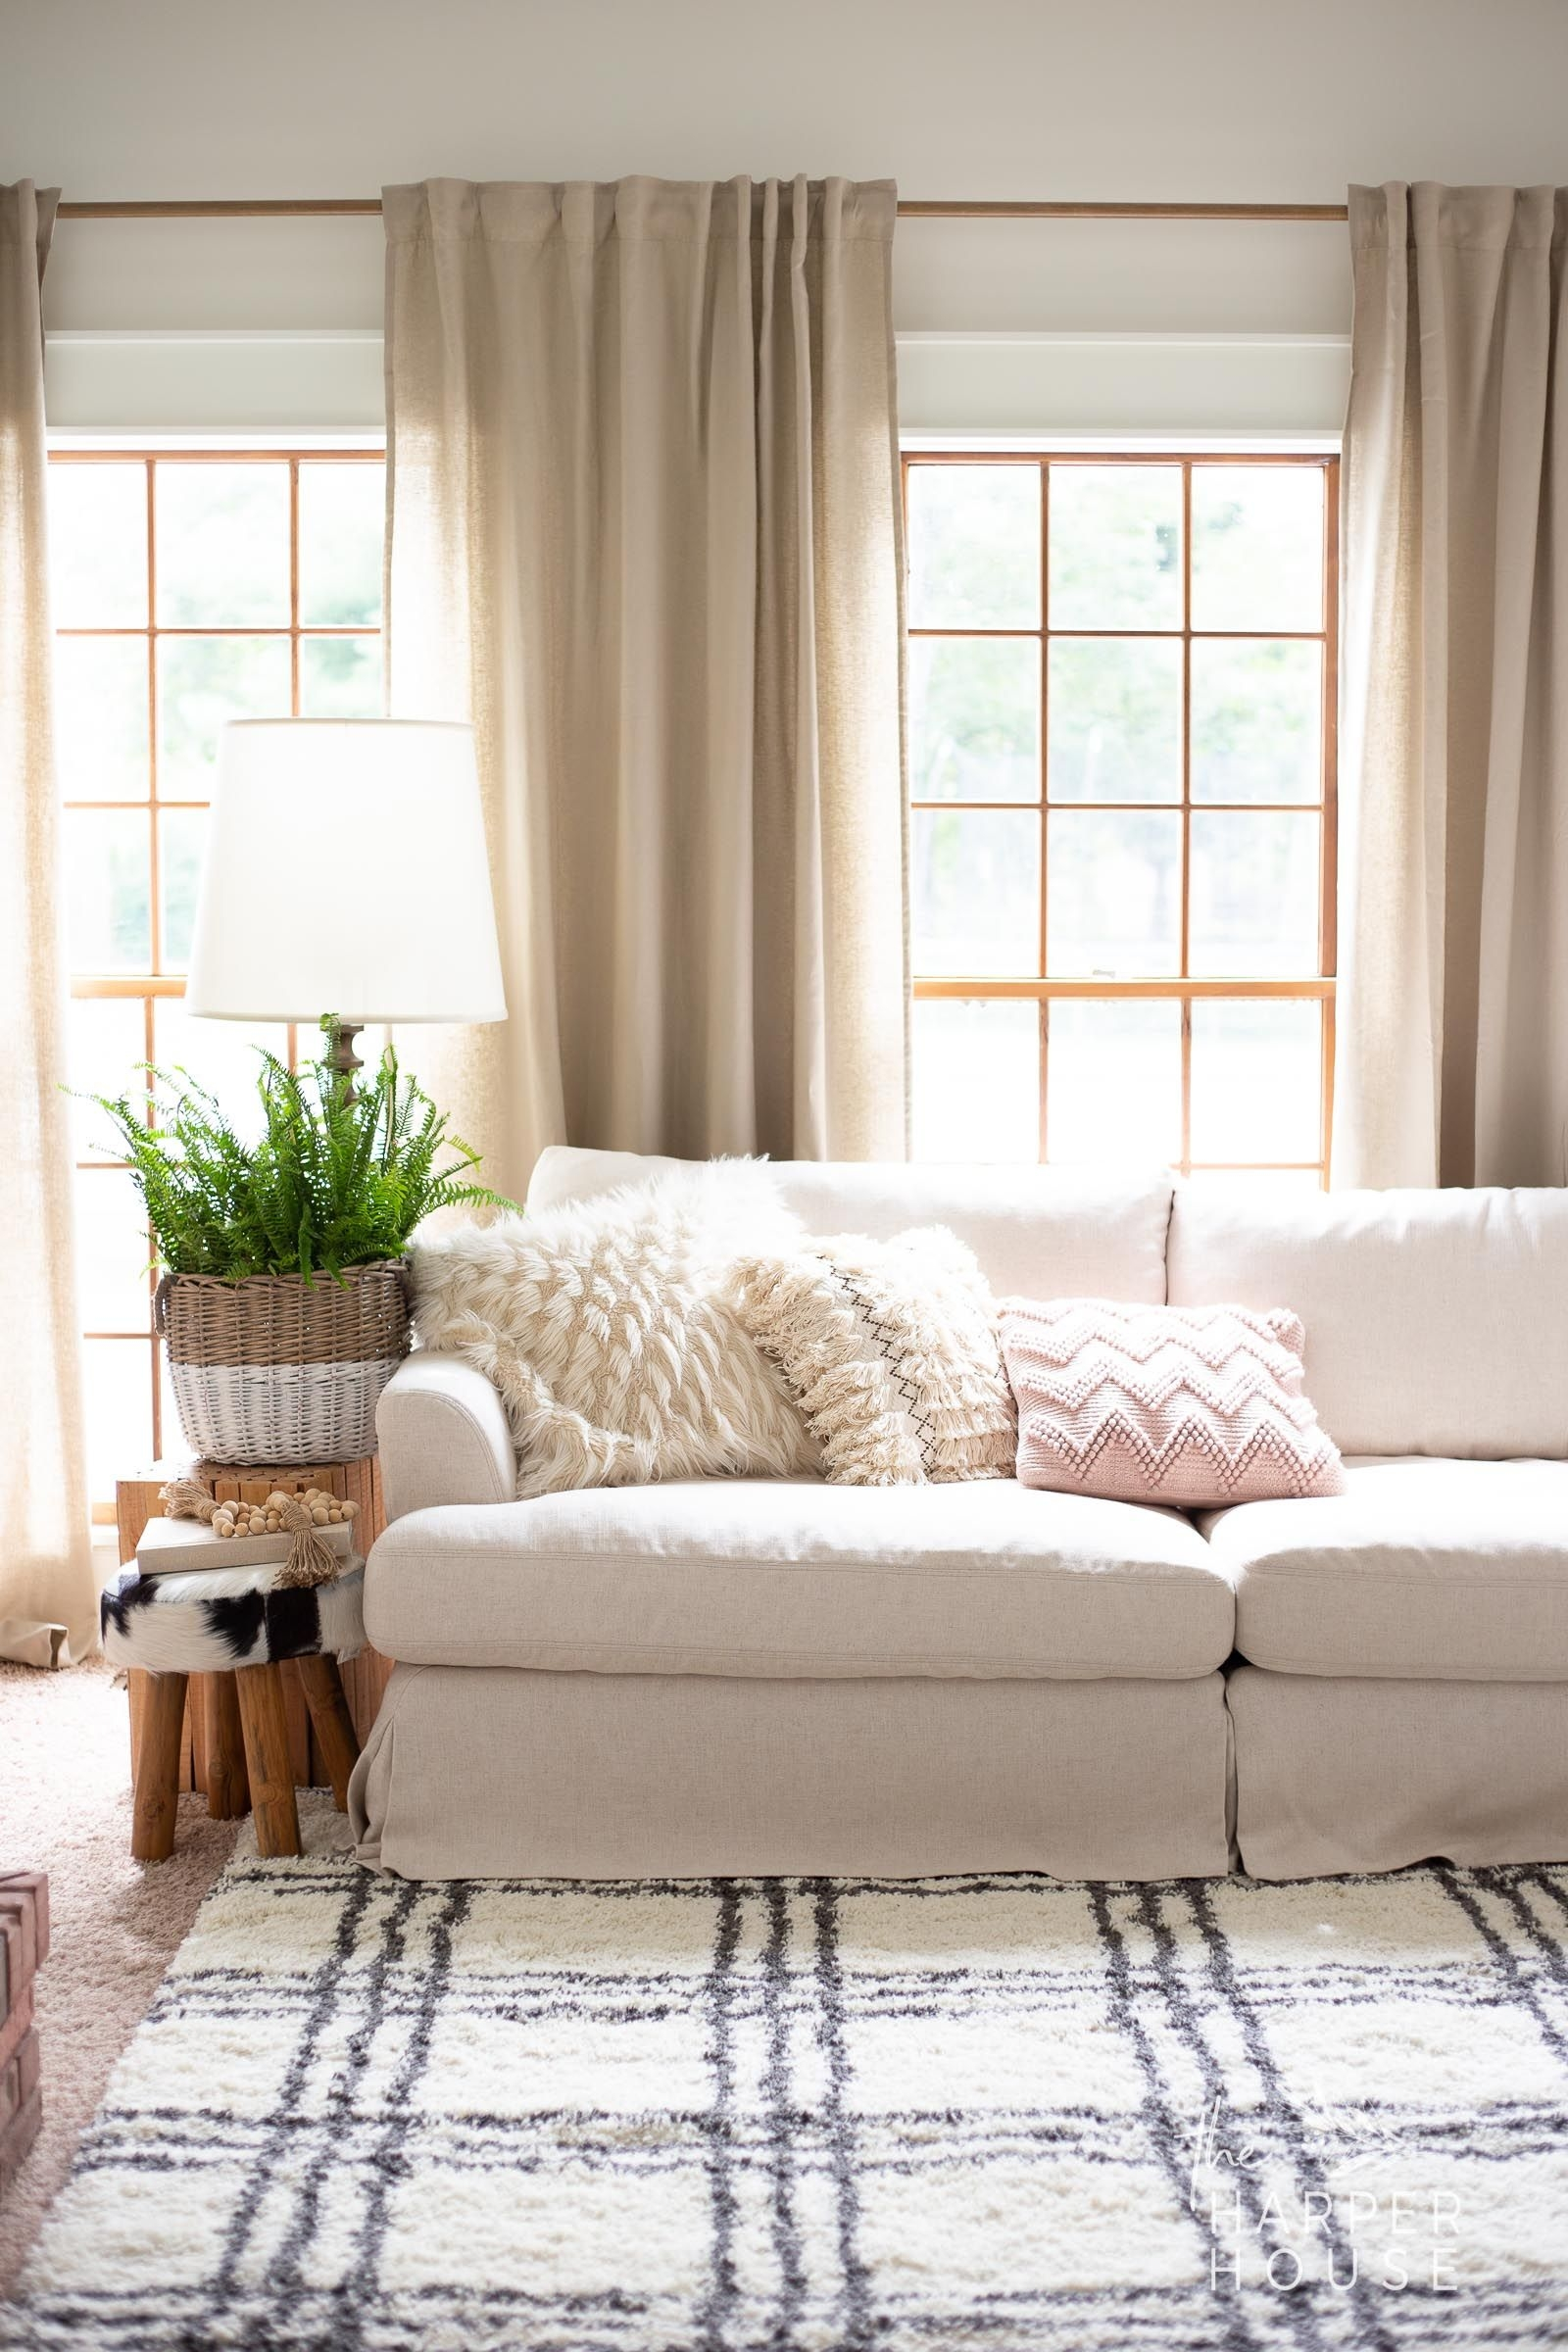 Beauteous Small Living Room Decor Ideas Boho Rugs 9x12 On Stunning Super Affordable Black and White Rug 9x12 for Under $350 On Small Living Room Decor Ideas Boho Rugs 9x12